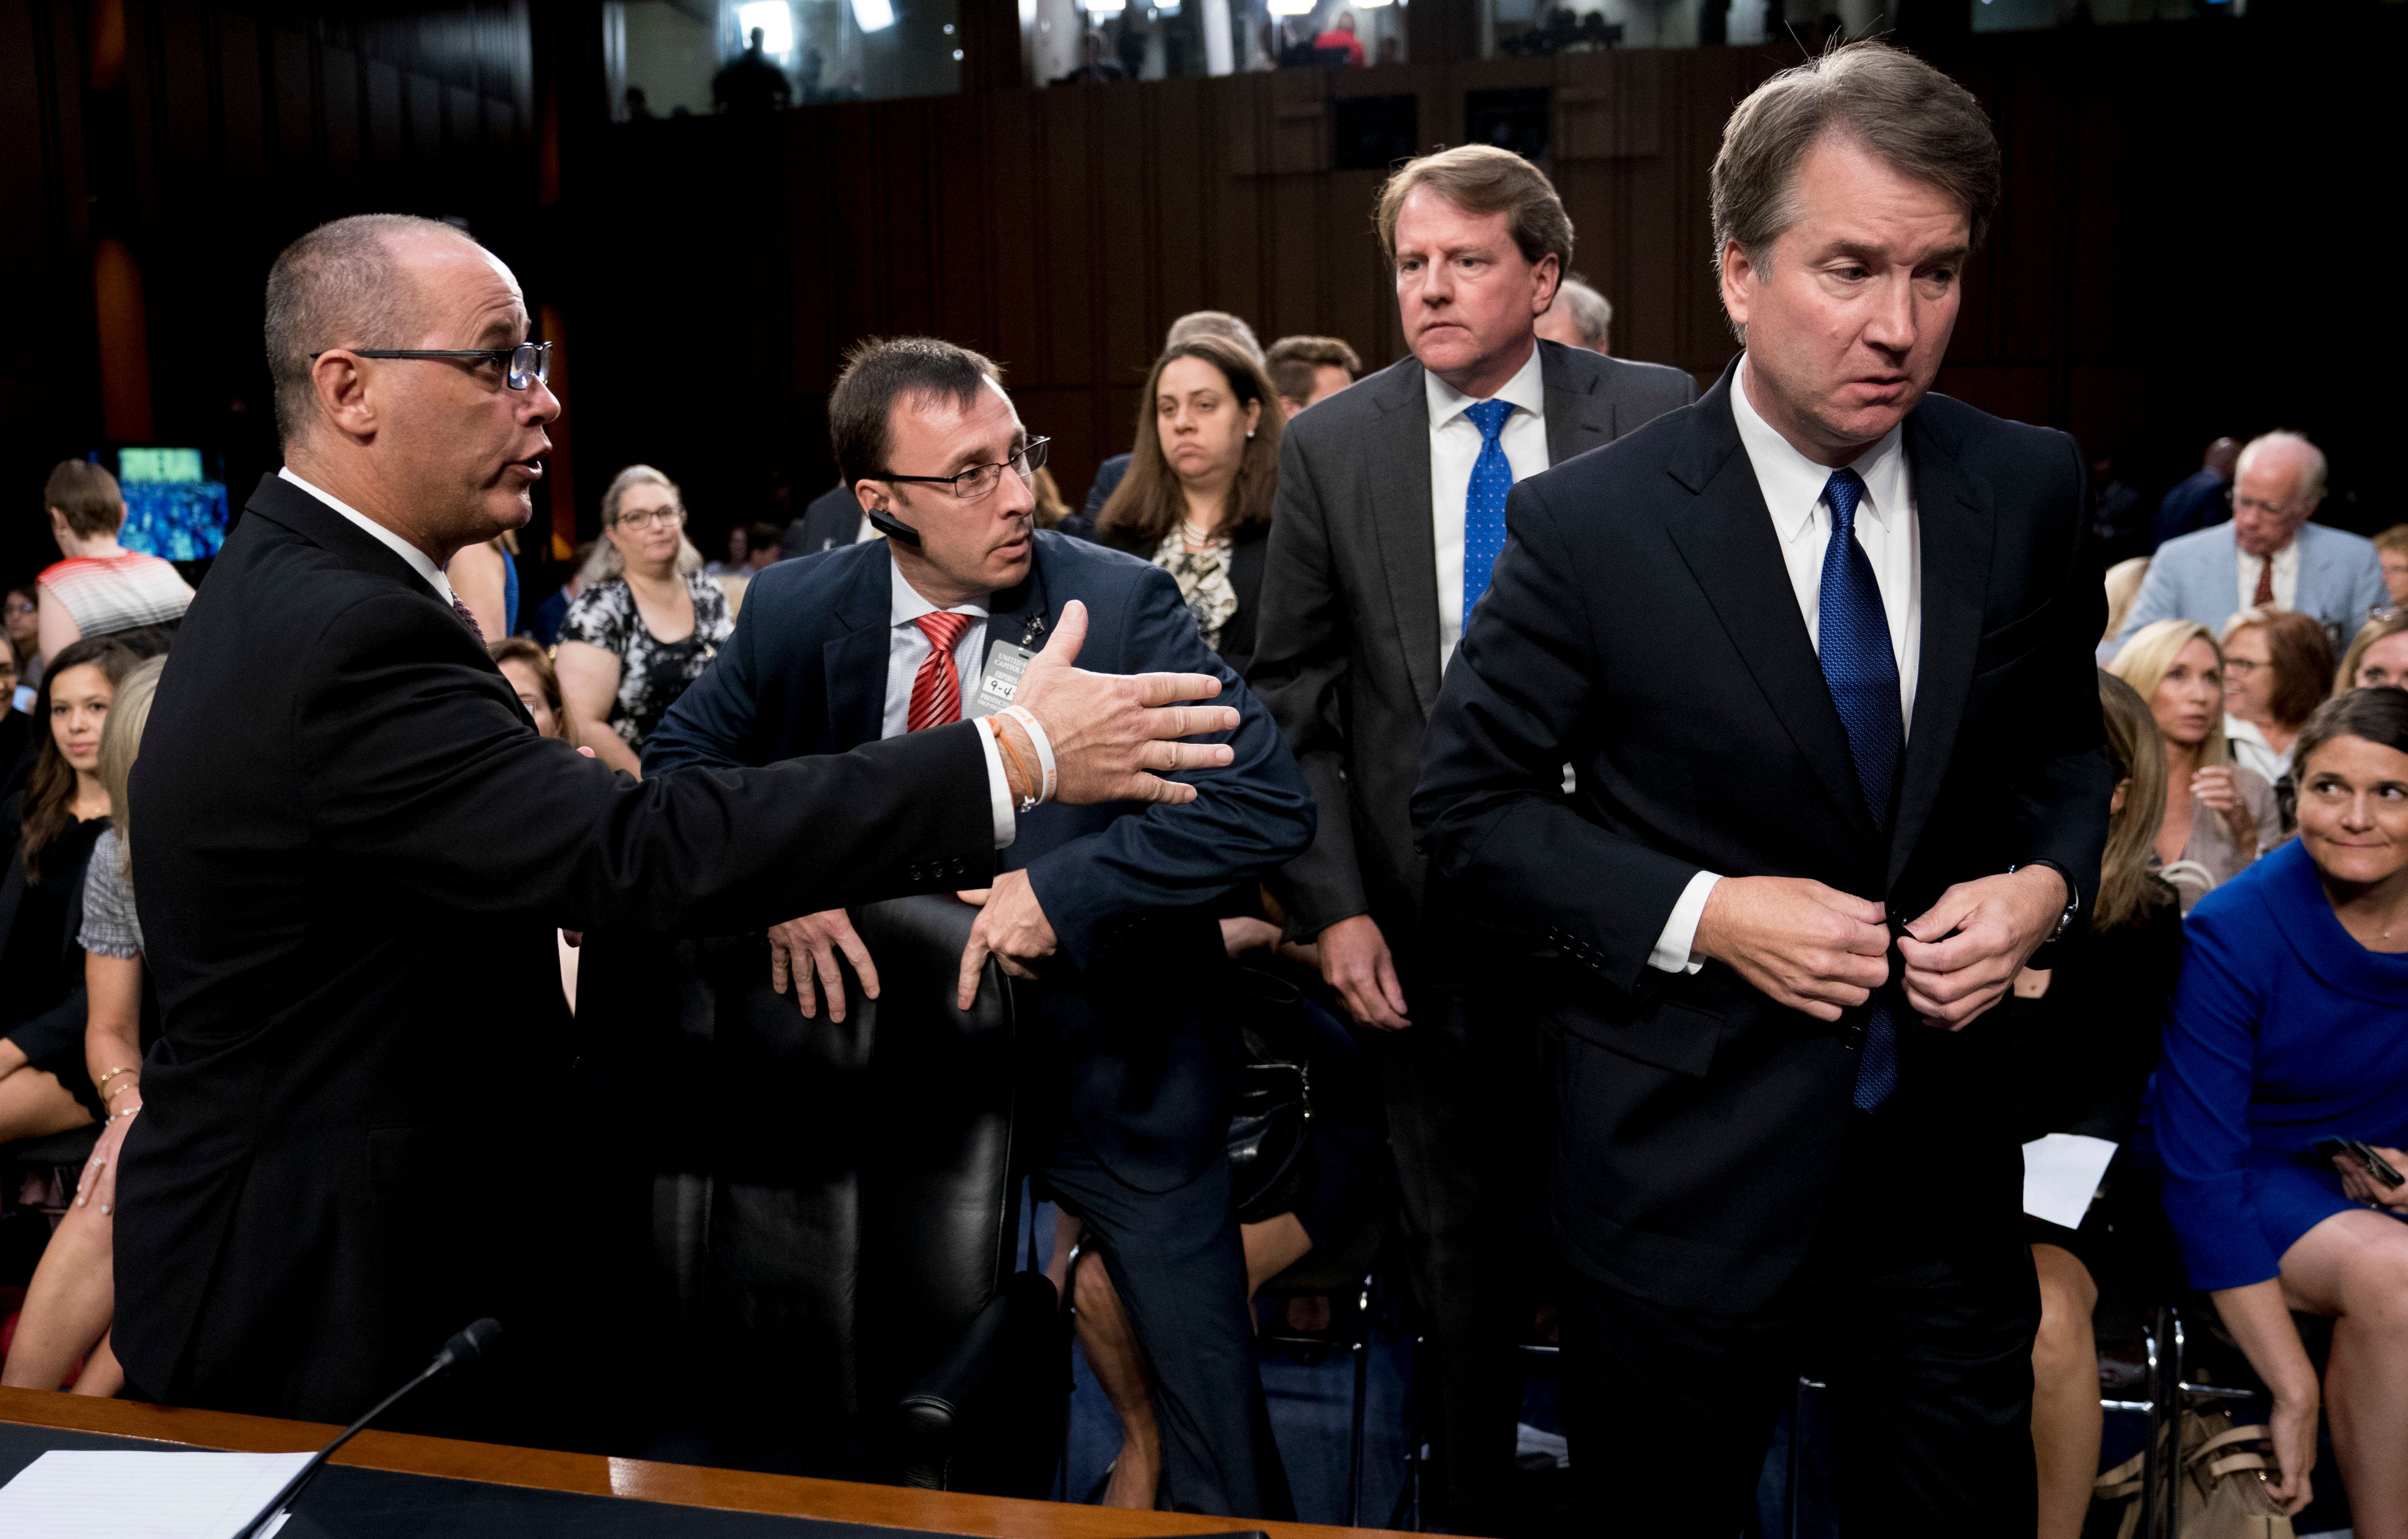 White House counsel Don McGahn, second from right, watches as Guttenberg attempts to shake hands with Kavanaugh.